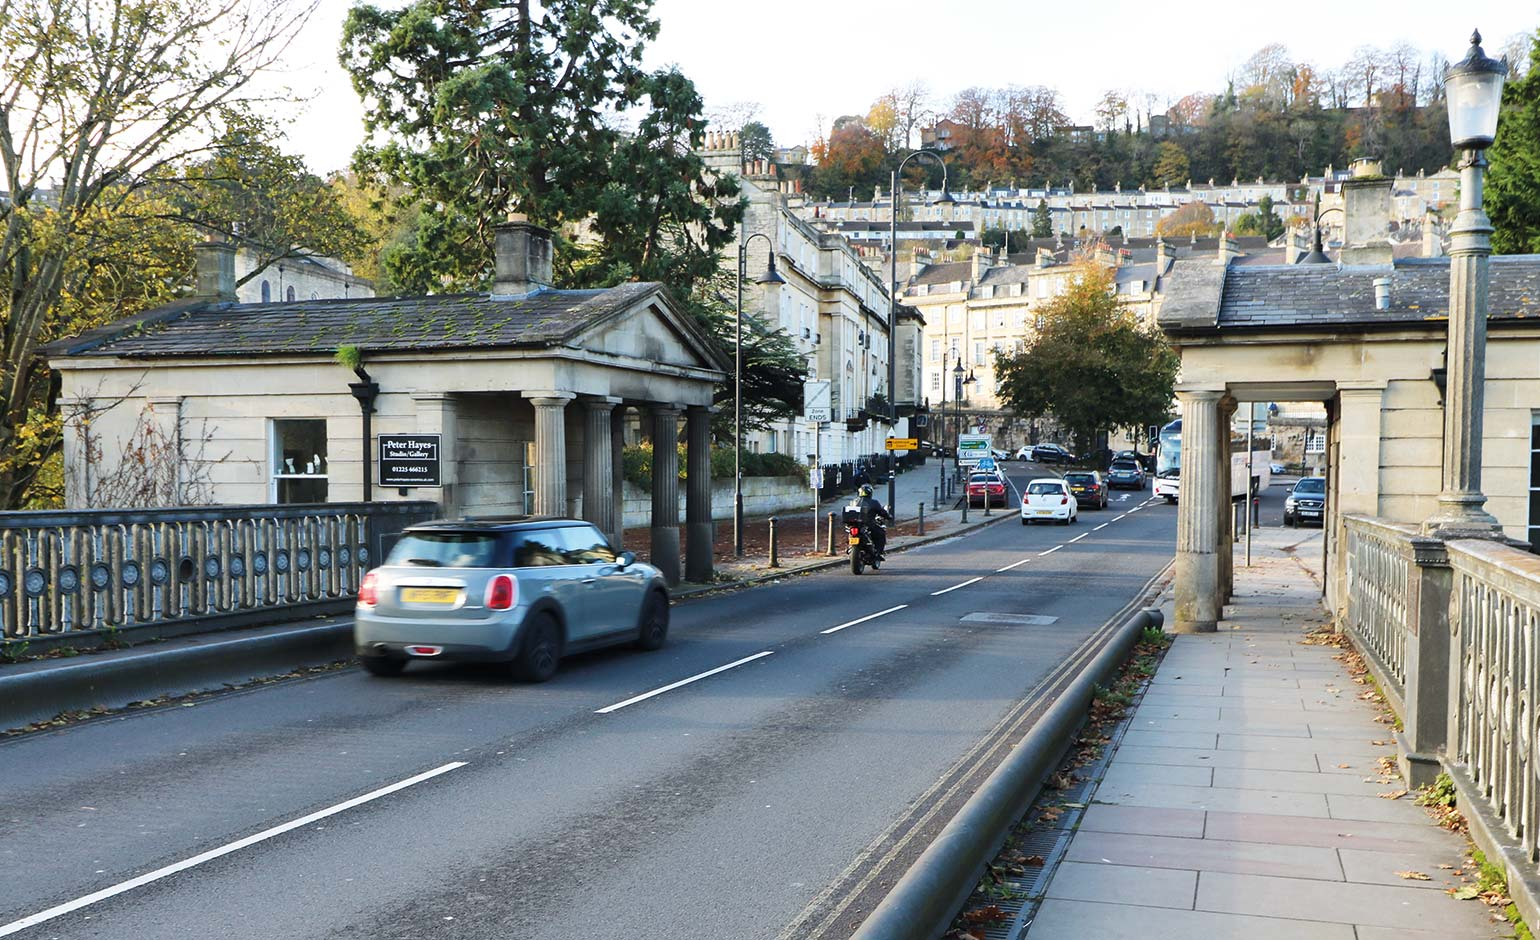 Government awards £3.5 million of funding to help repair Cleveland Bridge